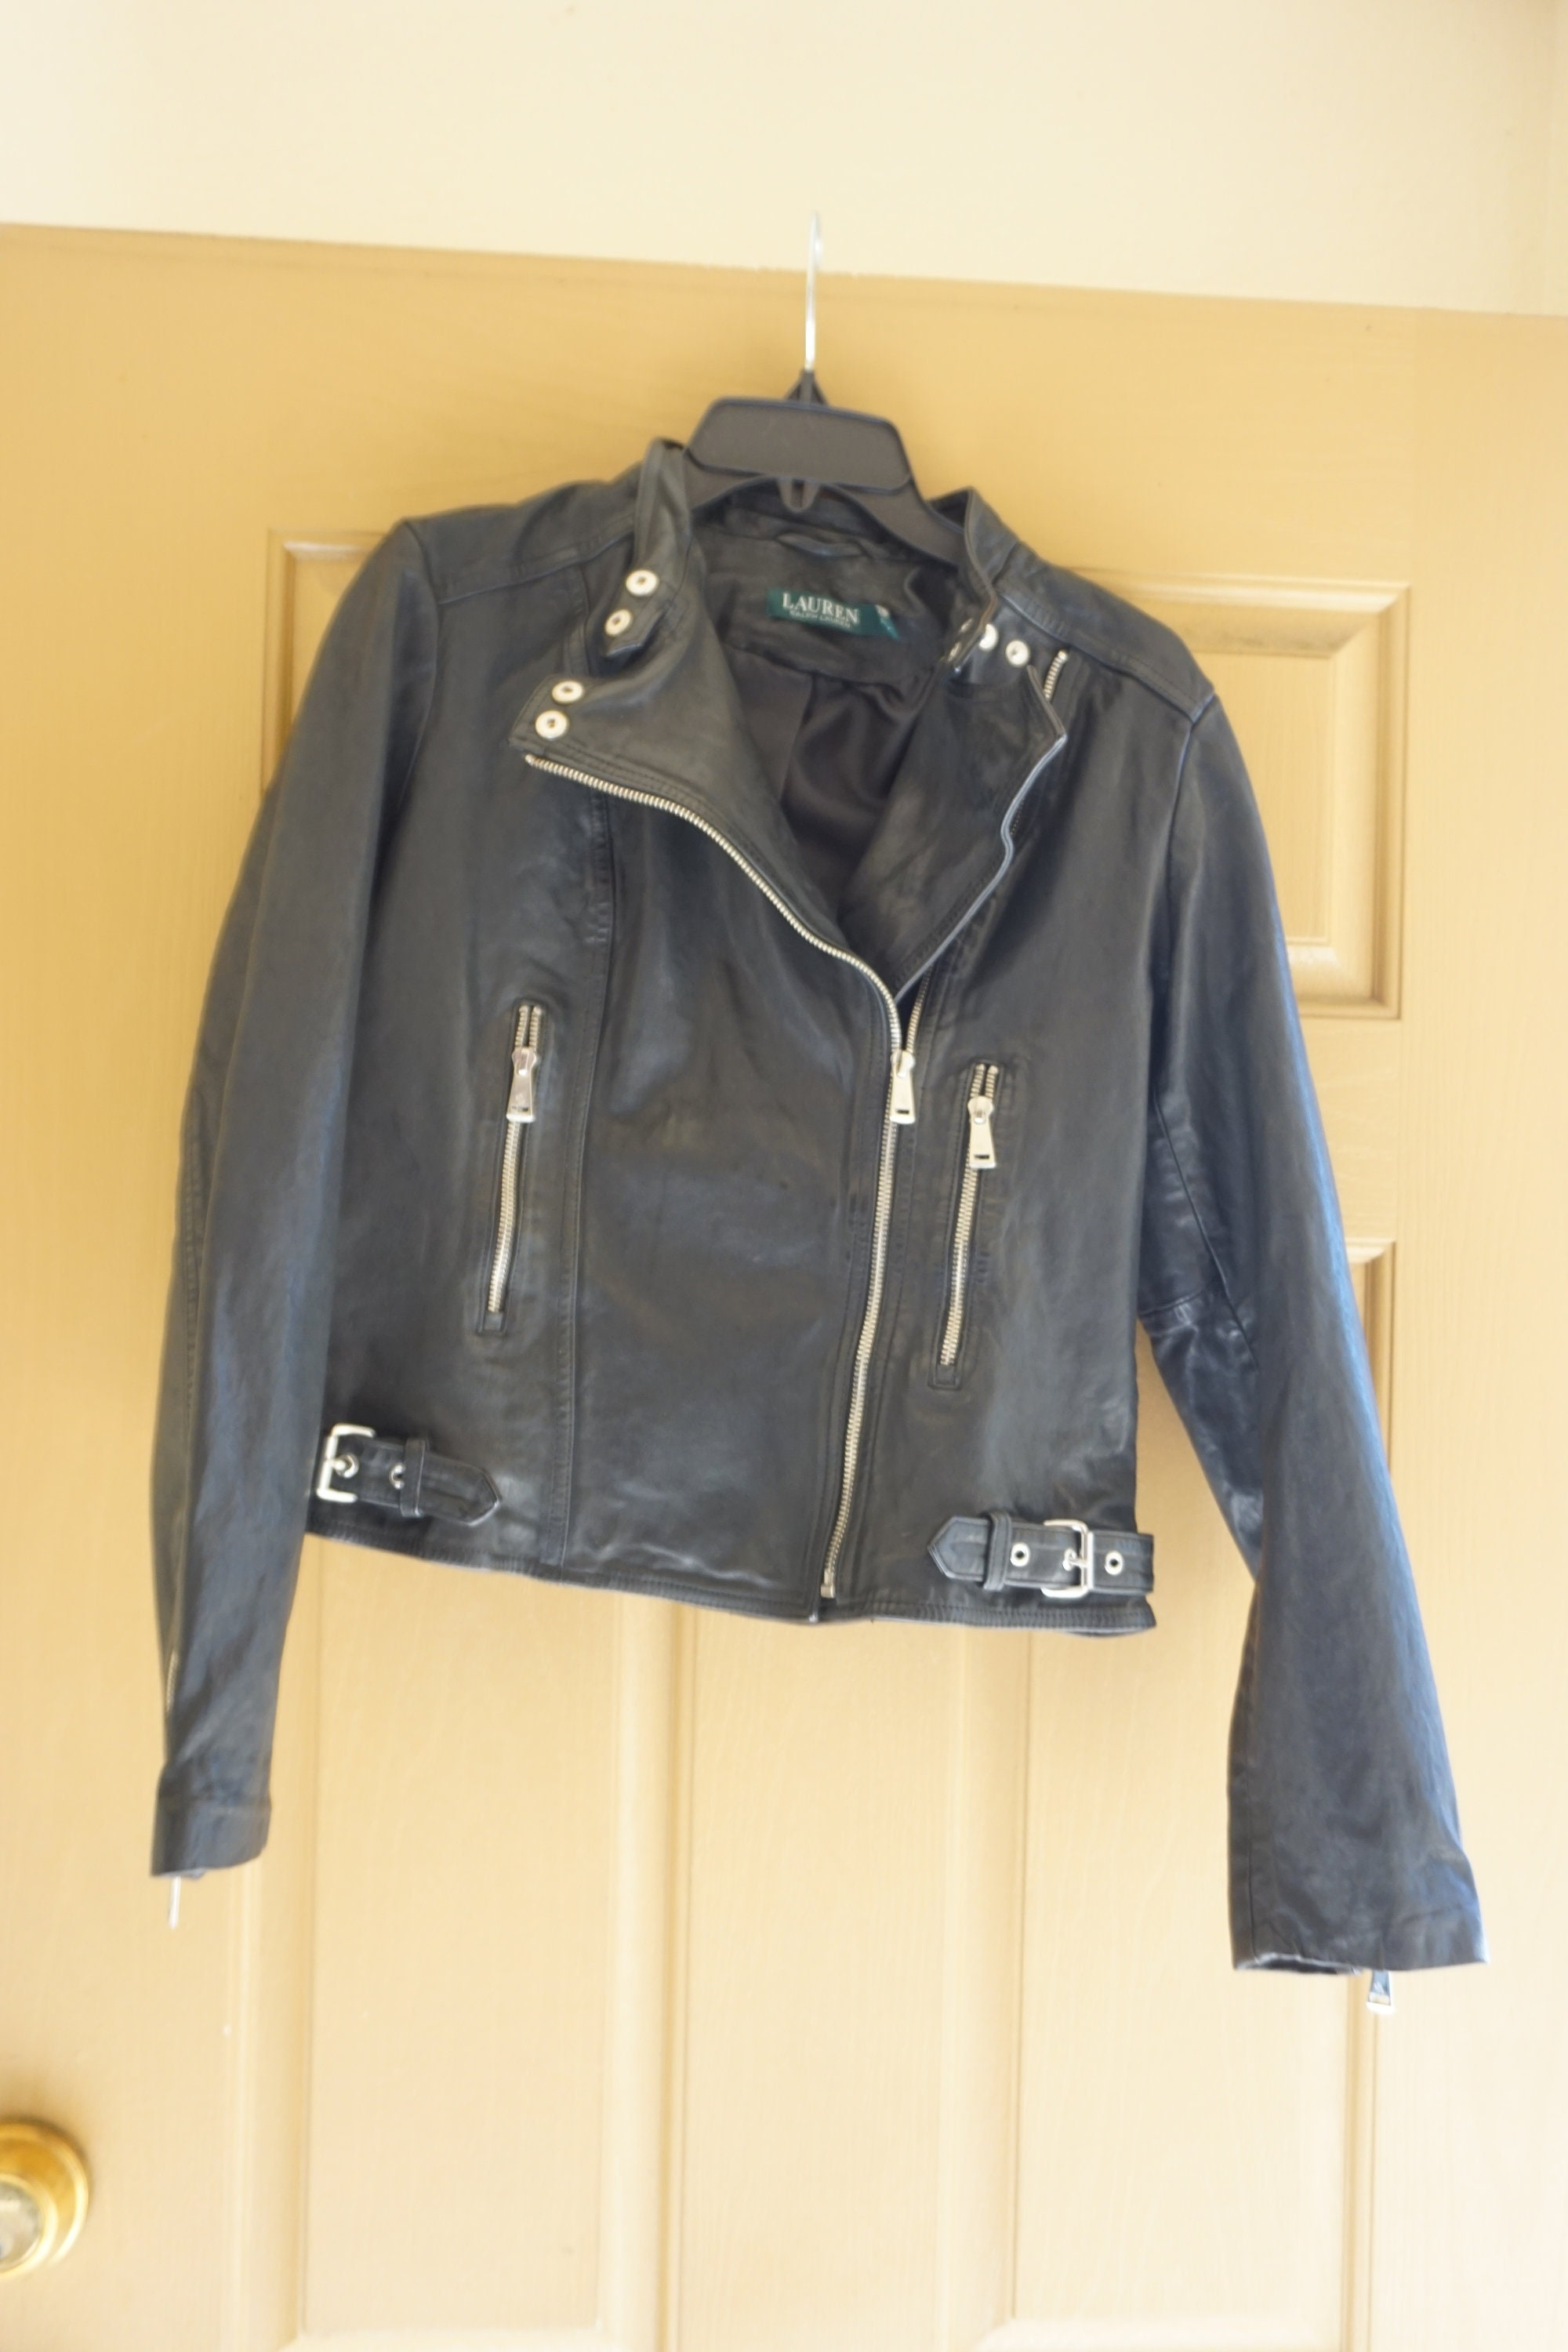 WOMANS~100/%~LEATHER~HALTER~CROP TOP~HARLEY RIDER~MOTORCYCLE~size~M~L~ACCESSORIE